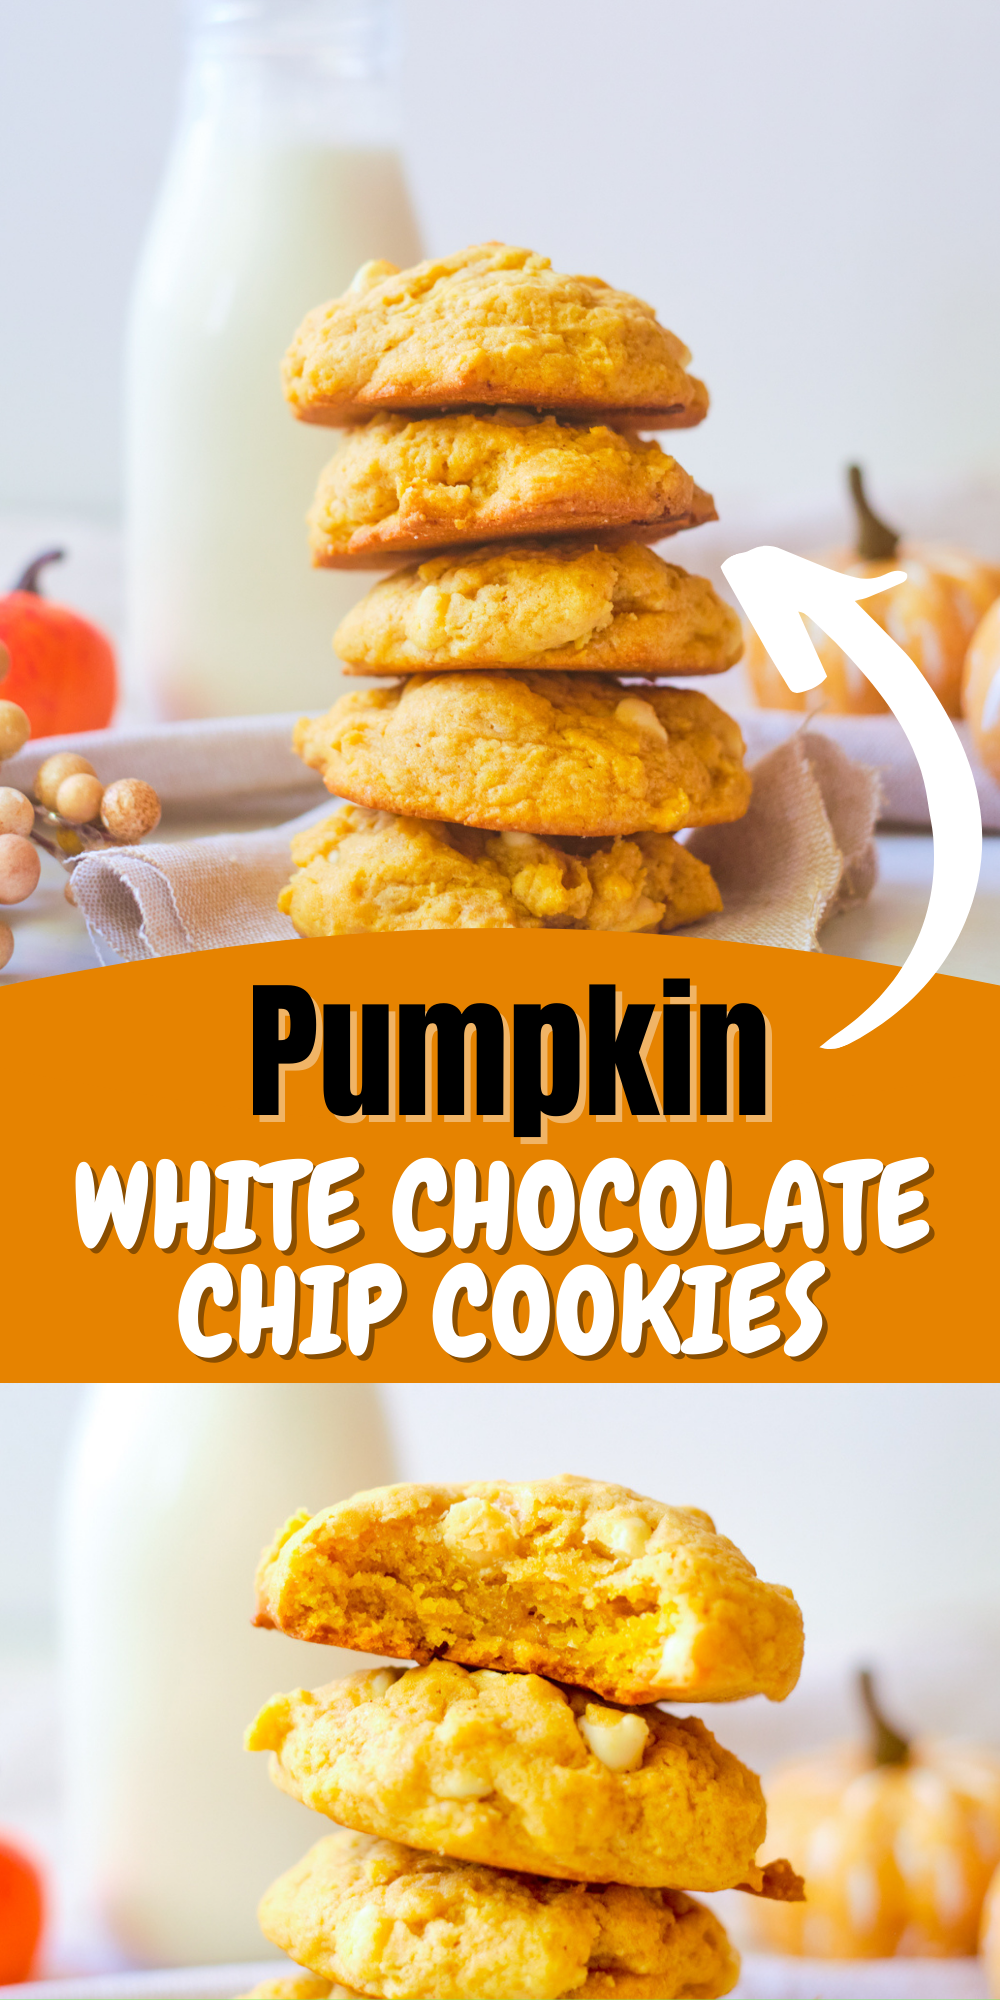 These Pumpkin White Chocolate Chip Cookies are simply perfect for fall and winter and are so yummy with a cup of java, tea or hot chocolate.